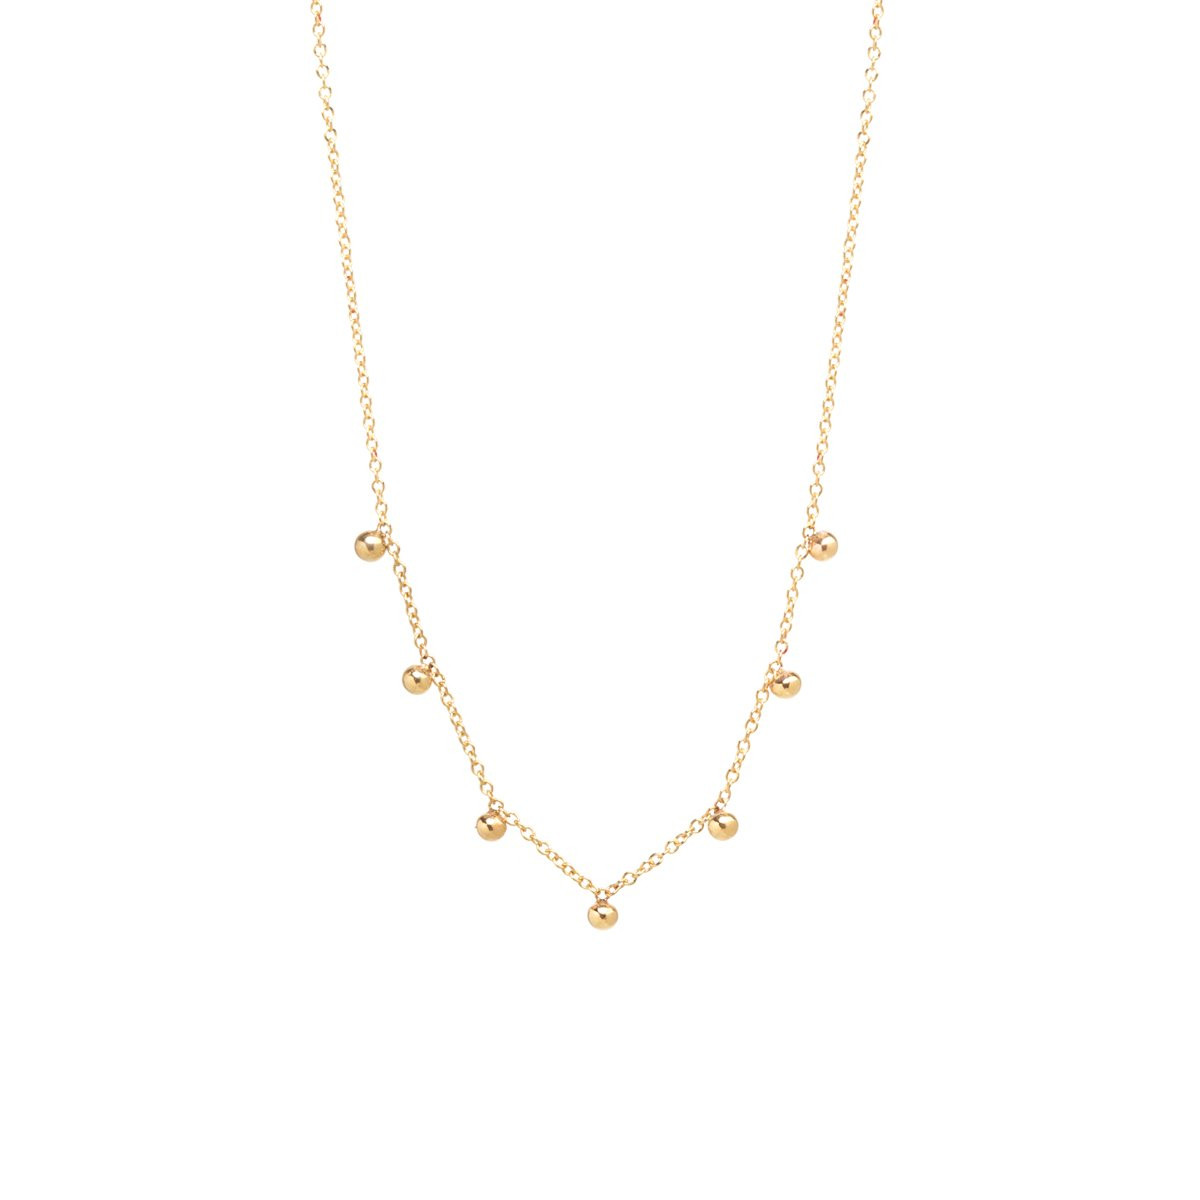 Zoe Chicco Seven Station Bead Necklace in 14K Gold